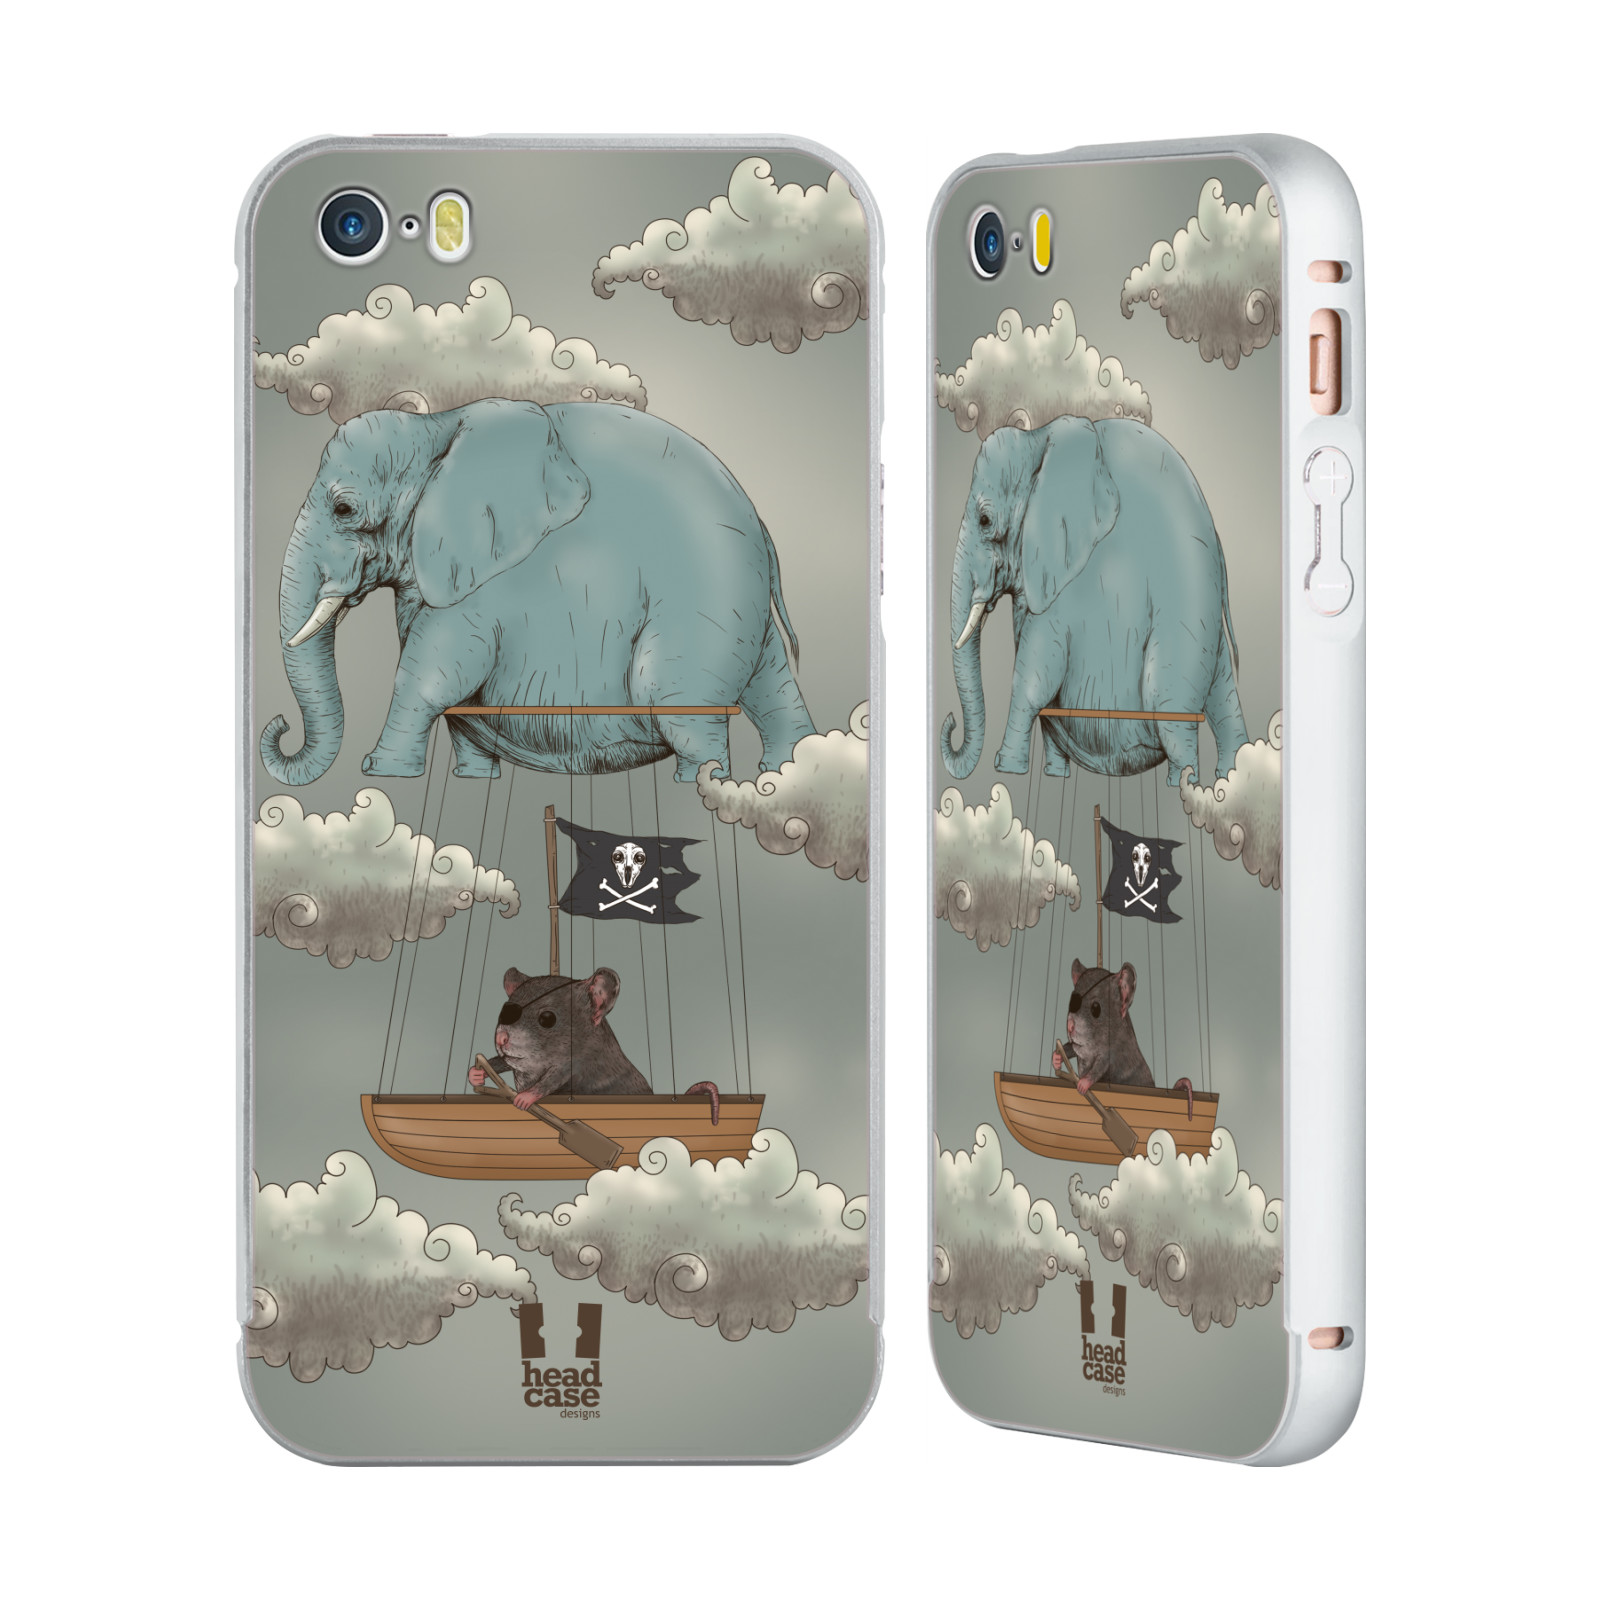 HEAD-CASE-DESIGNS-ANIMAL-FANTASIES-SILVER-SLIDER-CASE-FOR-APPLE-iPHONE-PHONES